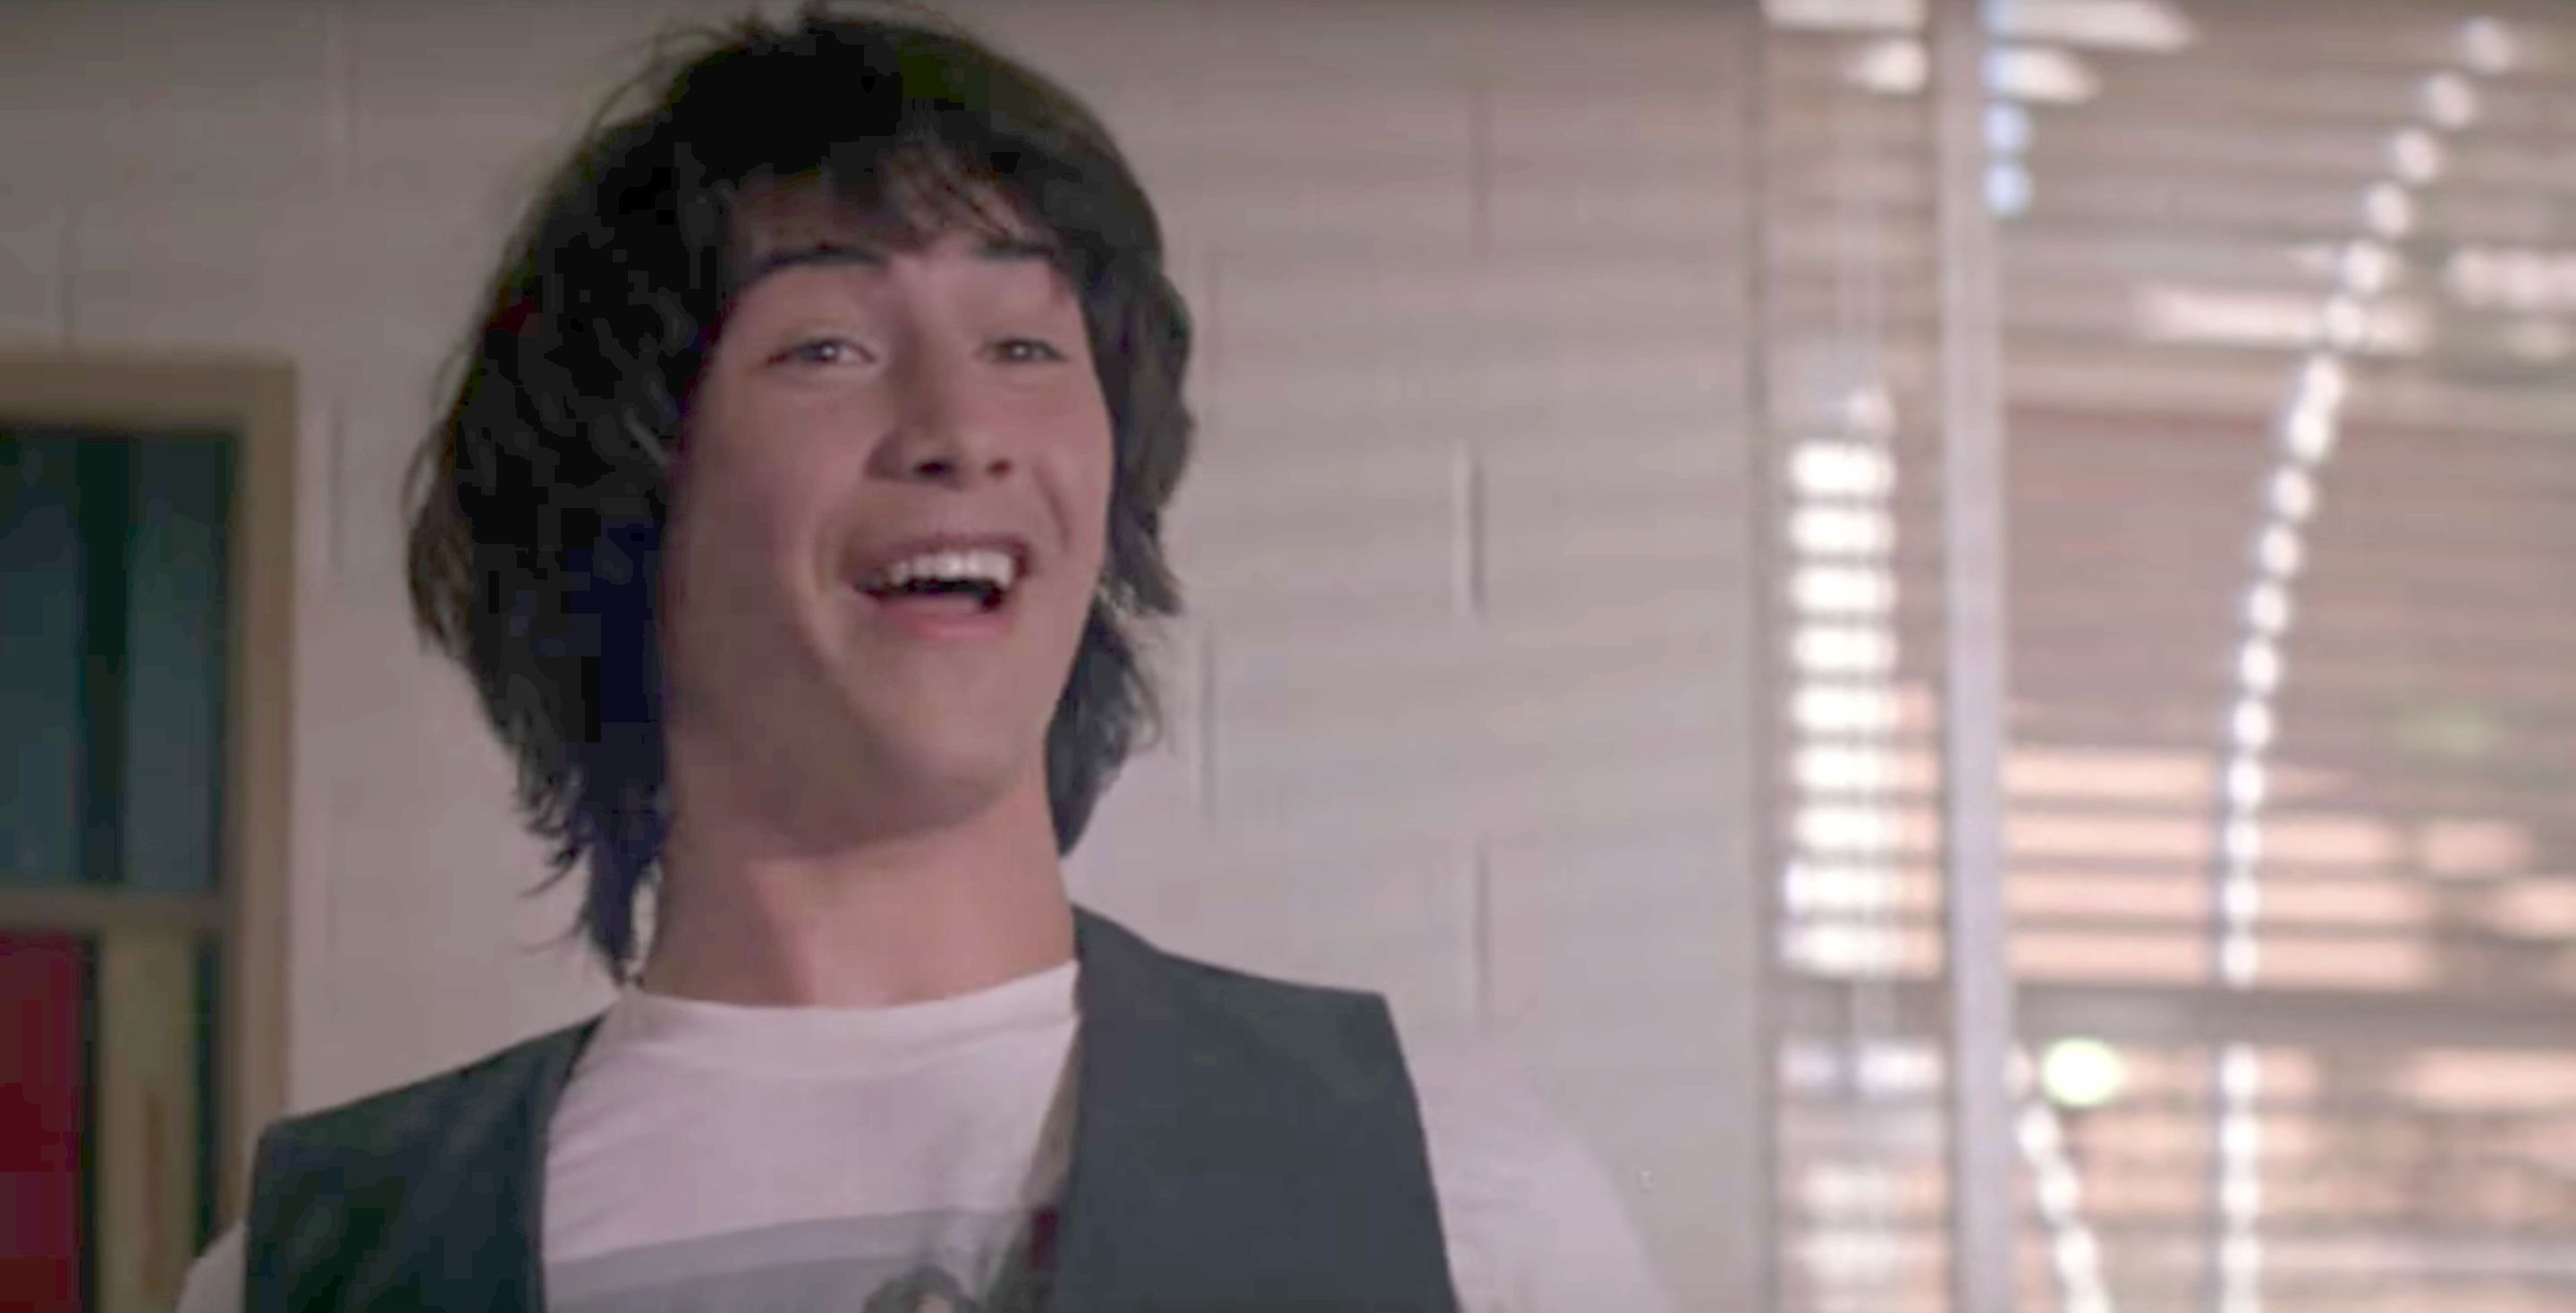 https://hips.hearstapps.com/hmg-prod.s3.amazonaws.com/images/bill-ted-keanu-reeves-1548795286.jpg